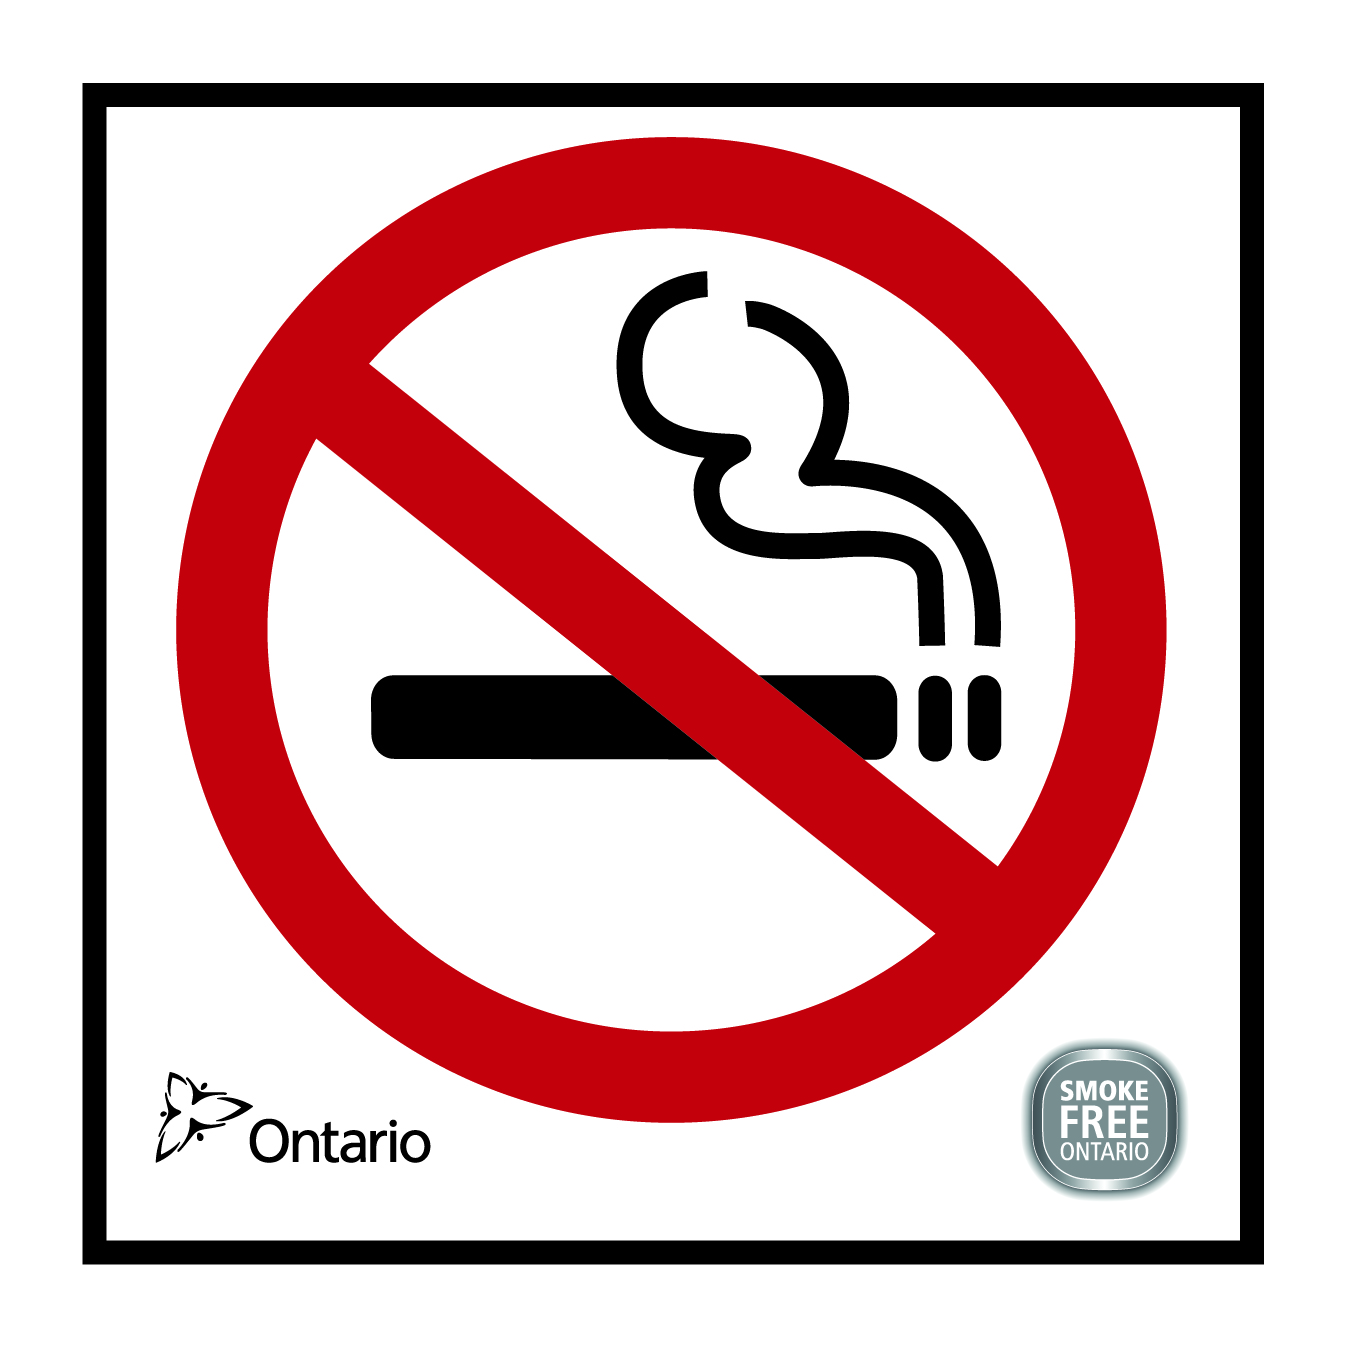 image regarding No Smoking Sign Printable referred to as Purchase Smoke-No cost Ontario Act Signs and symptoms EOHU Community Health and fitness